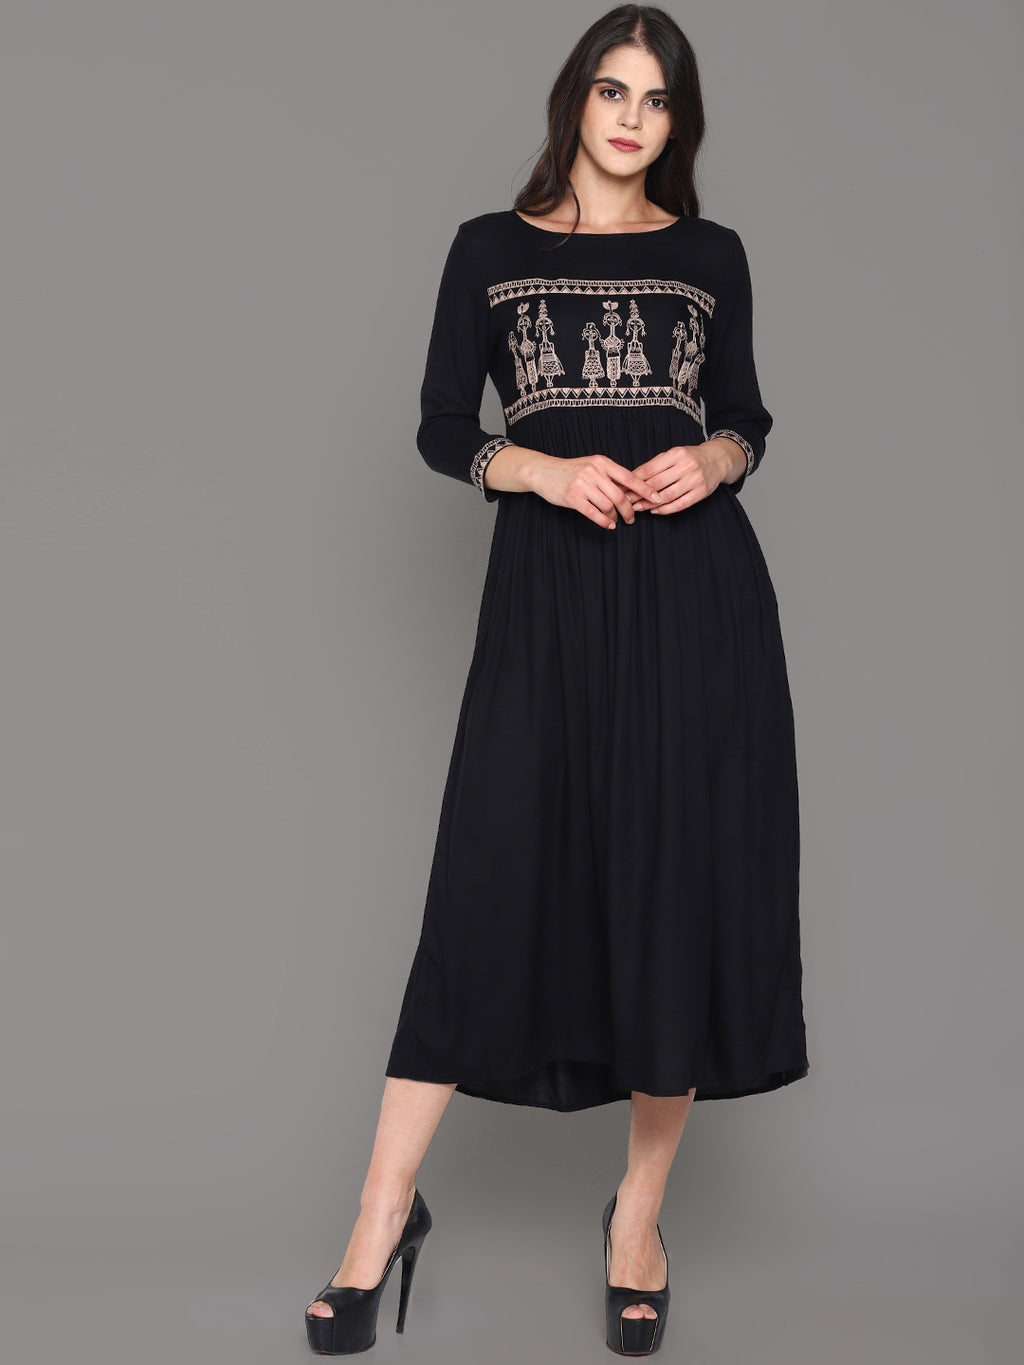 Black Maxi Dress With Tribal Embroidery | Untung